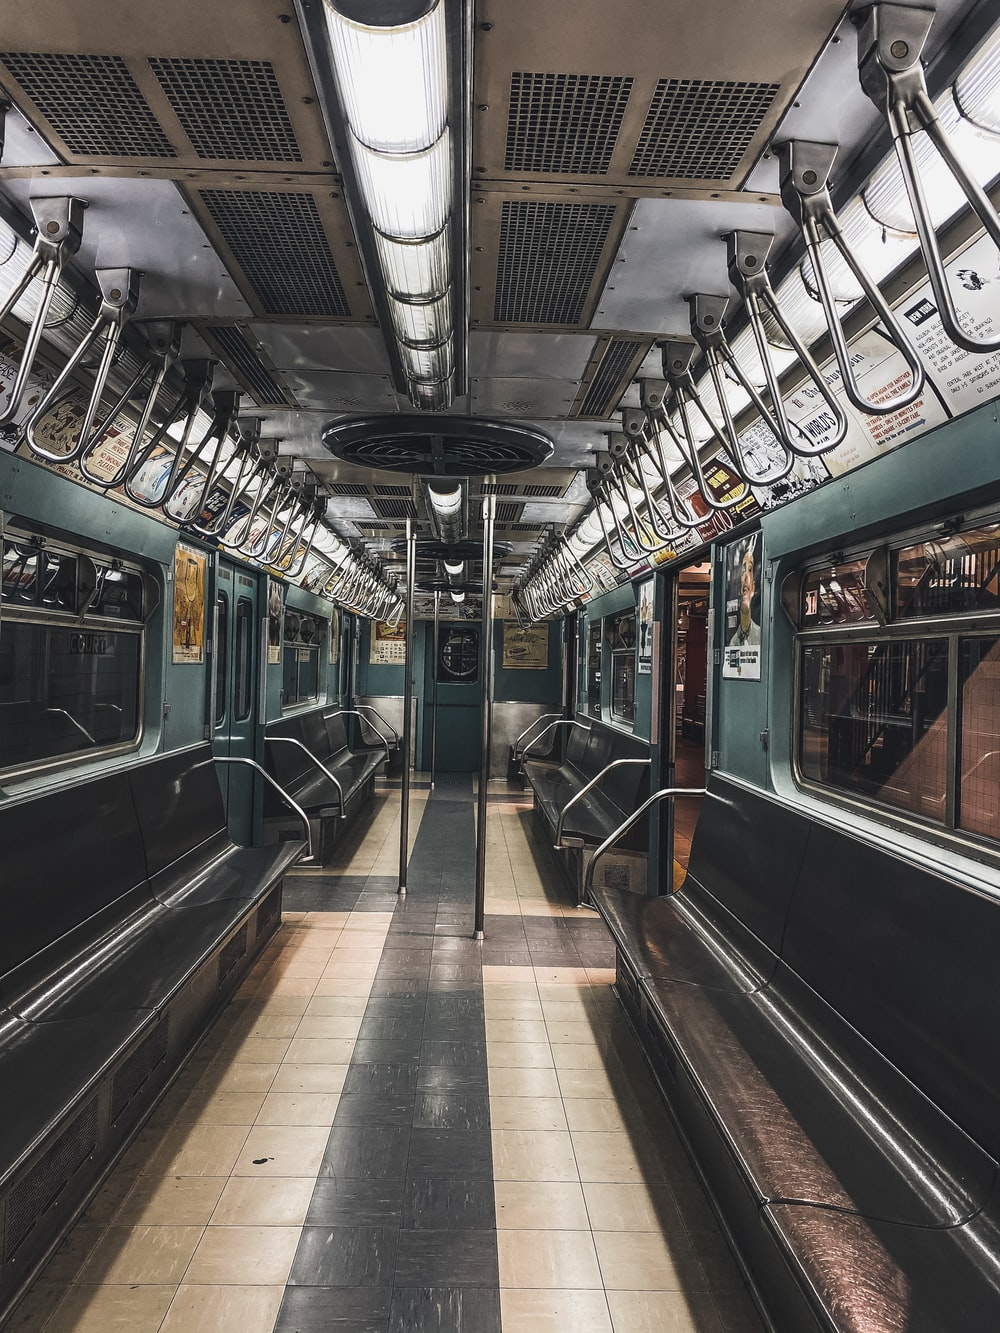 black and silver train in train station